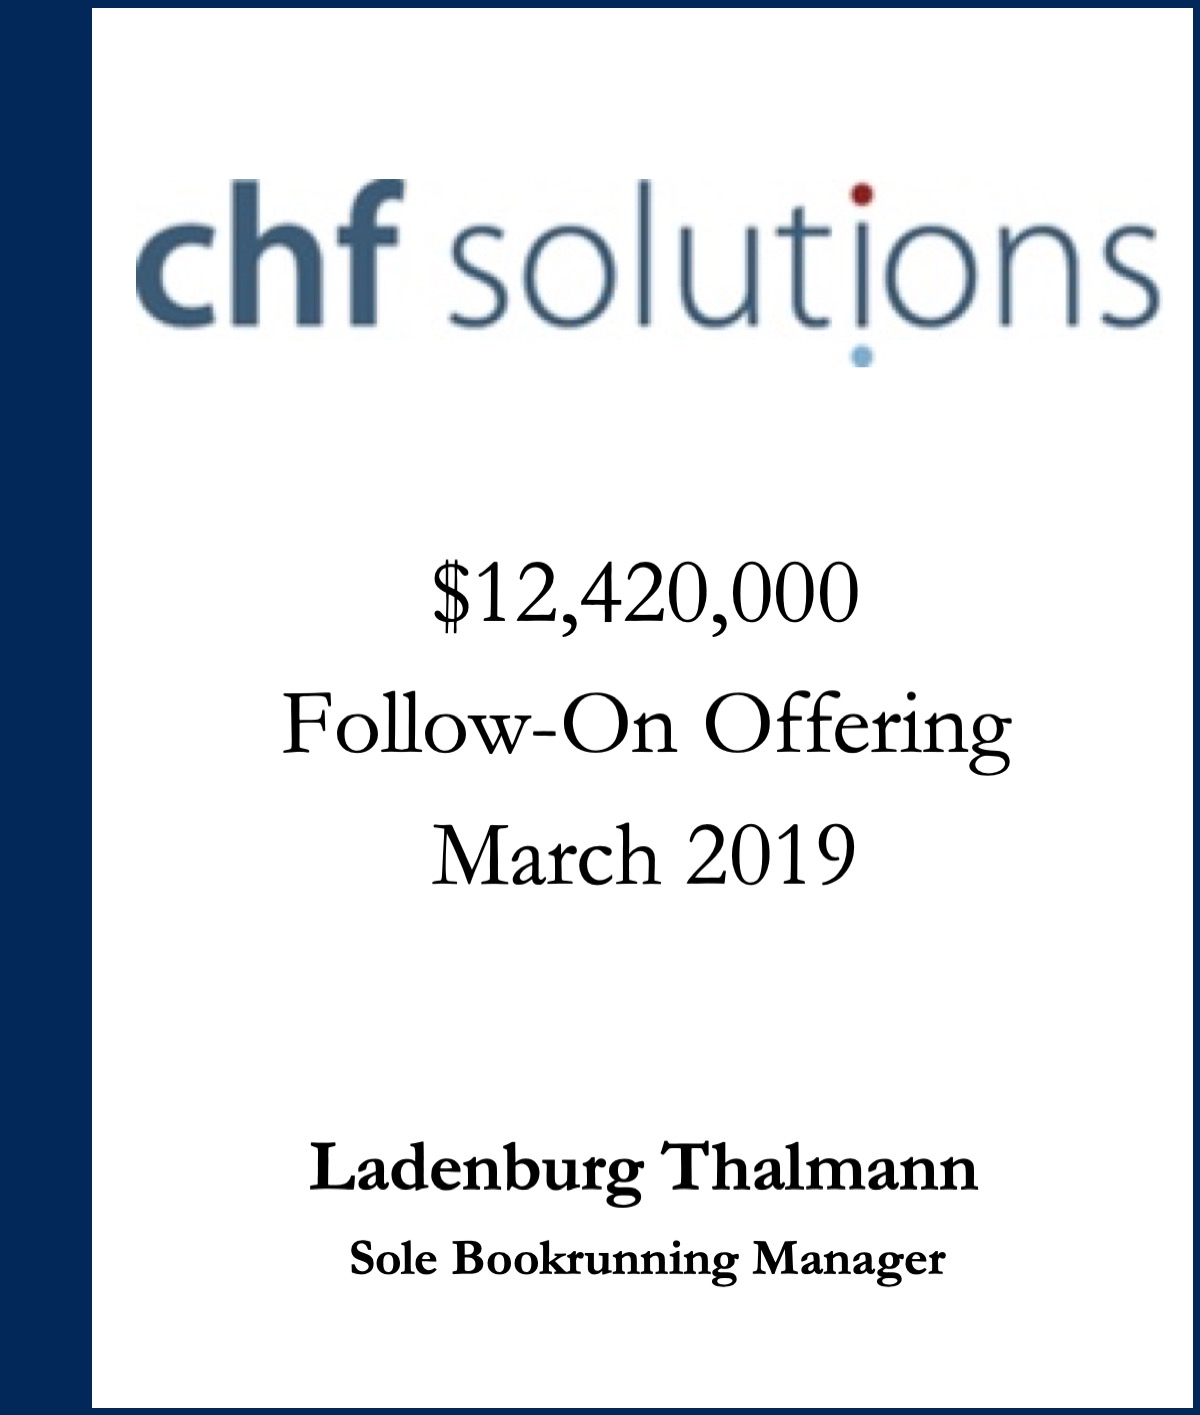 CHF Solutions